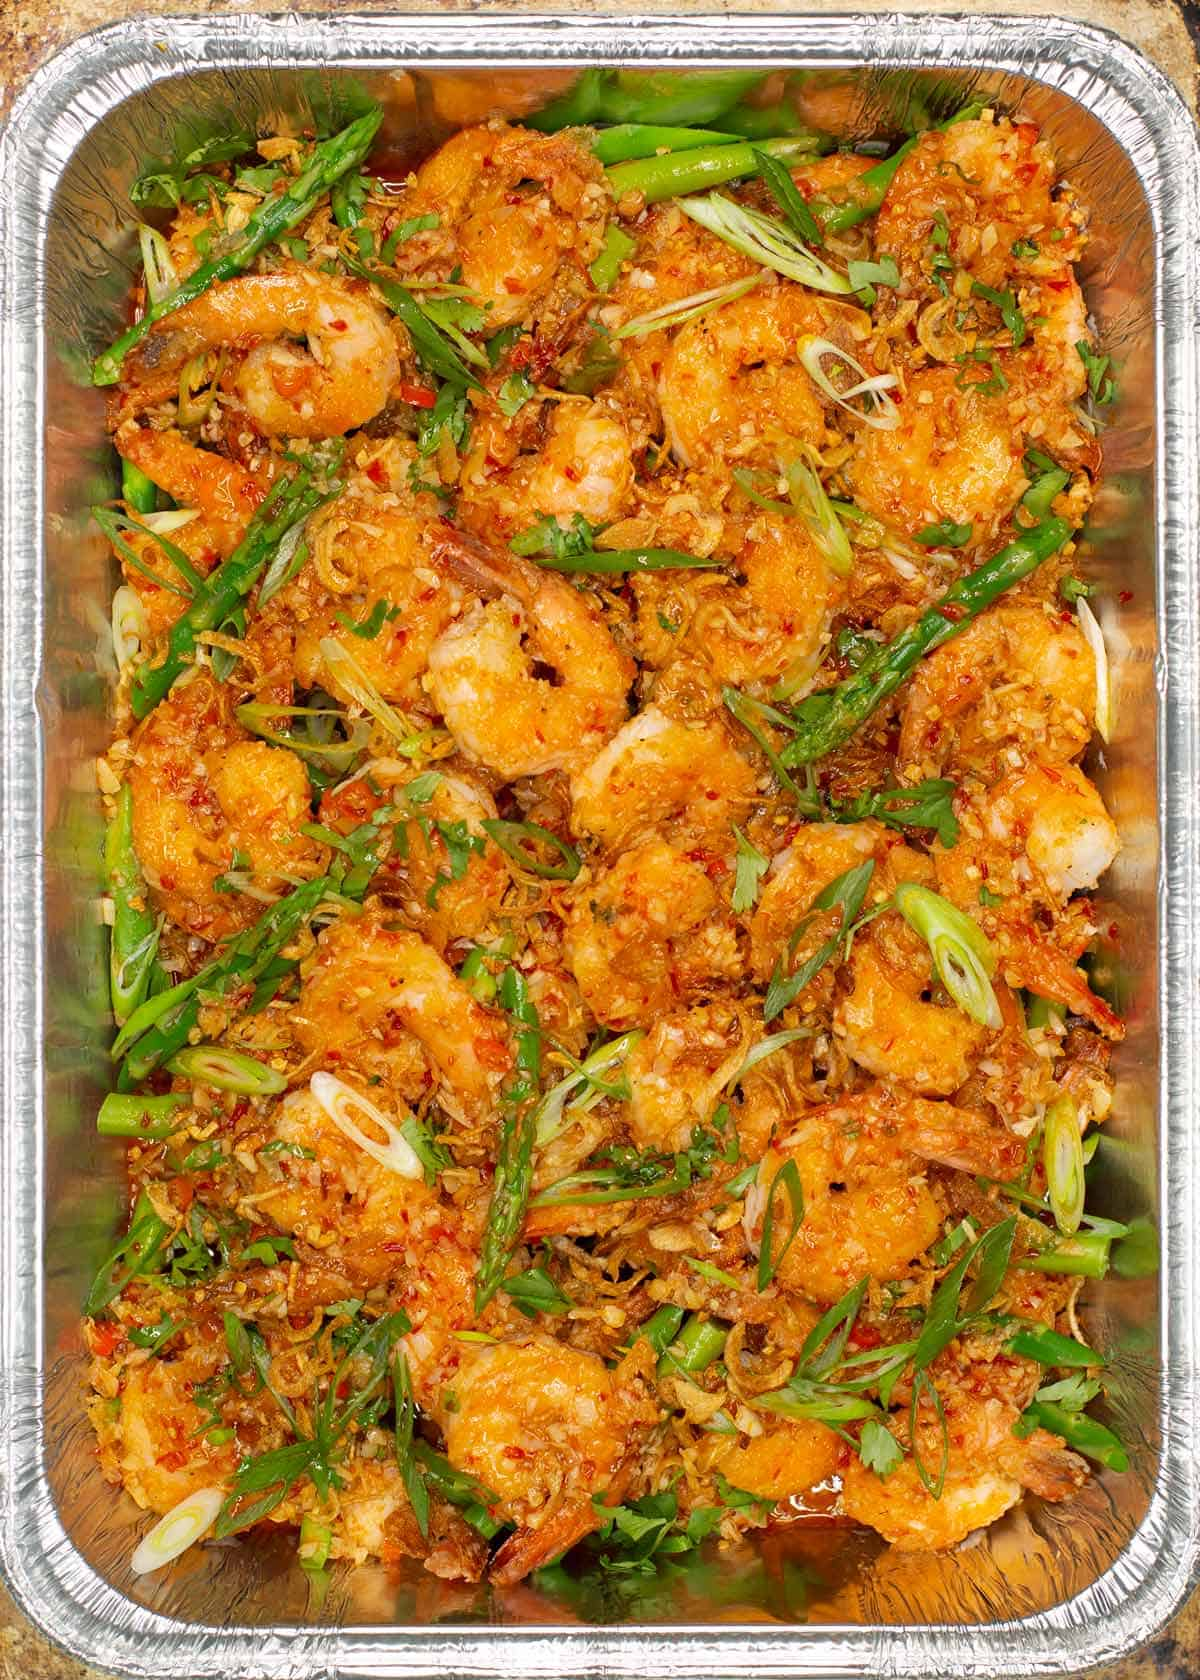 Asian Chili Garlic Shrimp with asparagus served on a foil pan